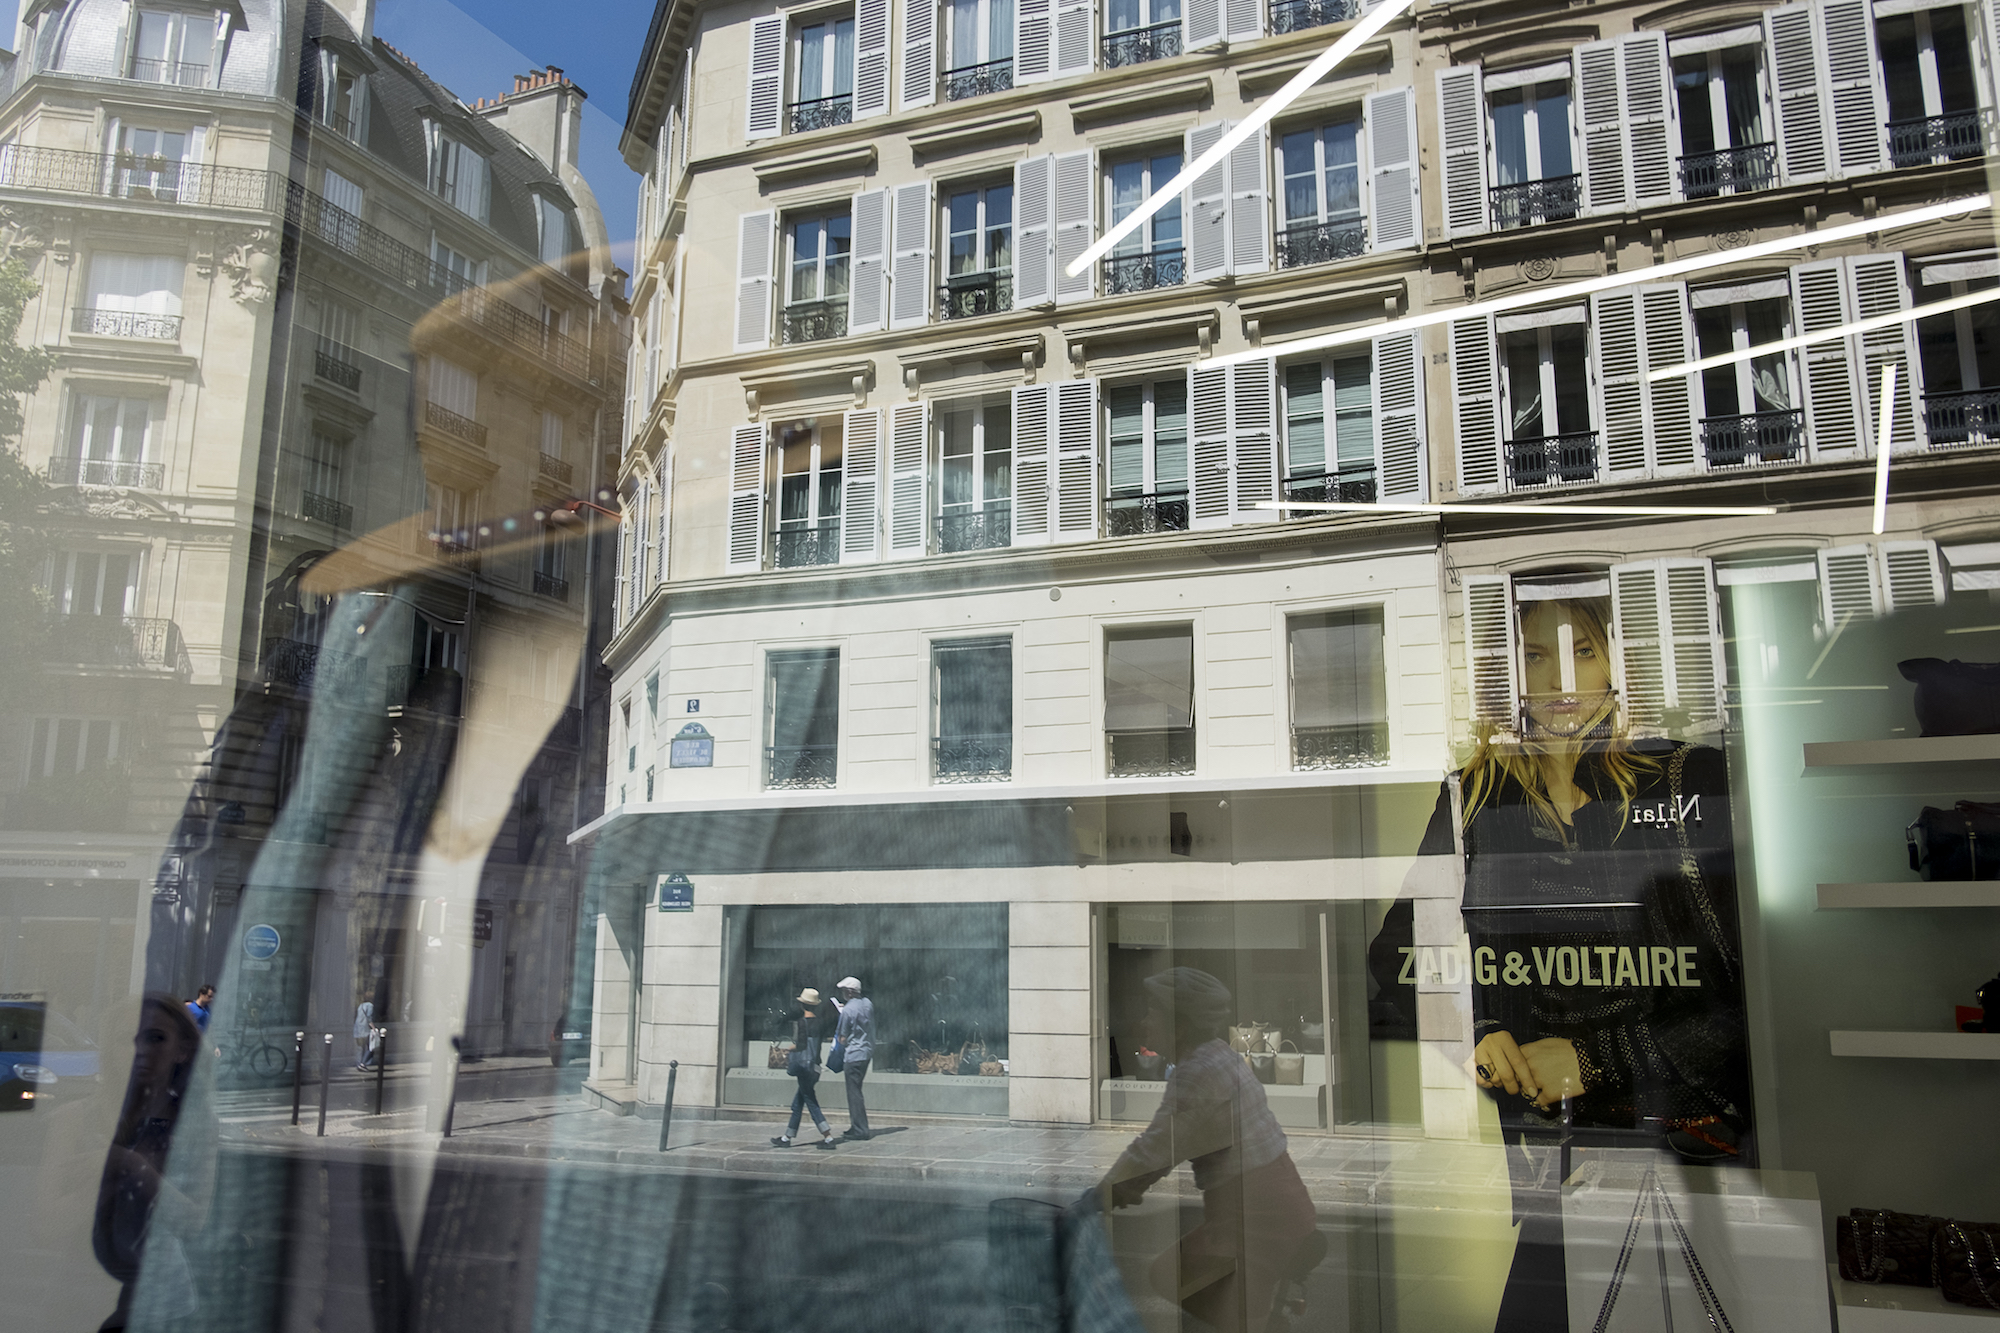 HiP Paris blog. Discovering Saint Sulpice. Reflection out of Zadig & Voltaire.